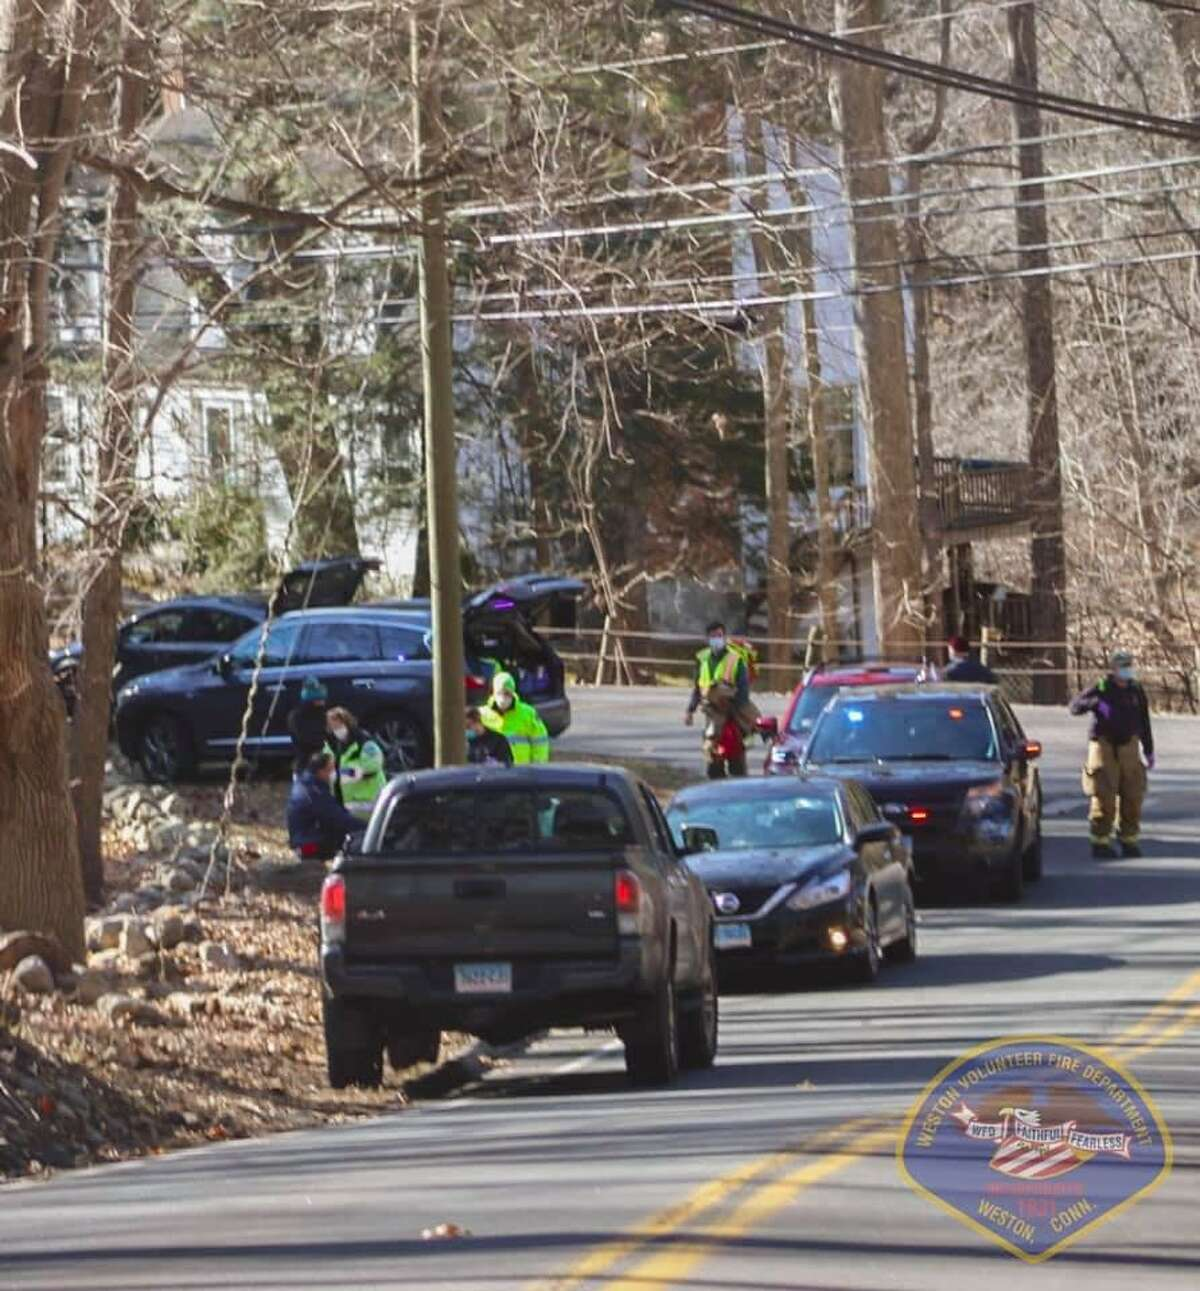 Authorities in Weston responded to a motor vehicle accident involving a bicycle Sunday afternoon.